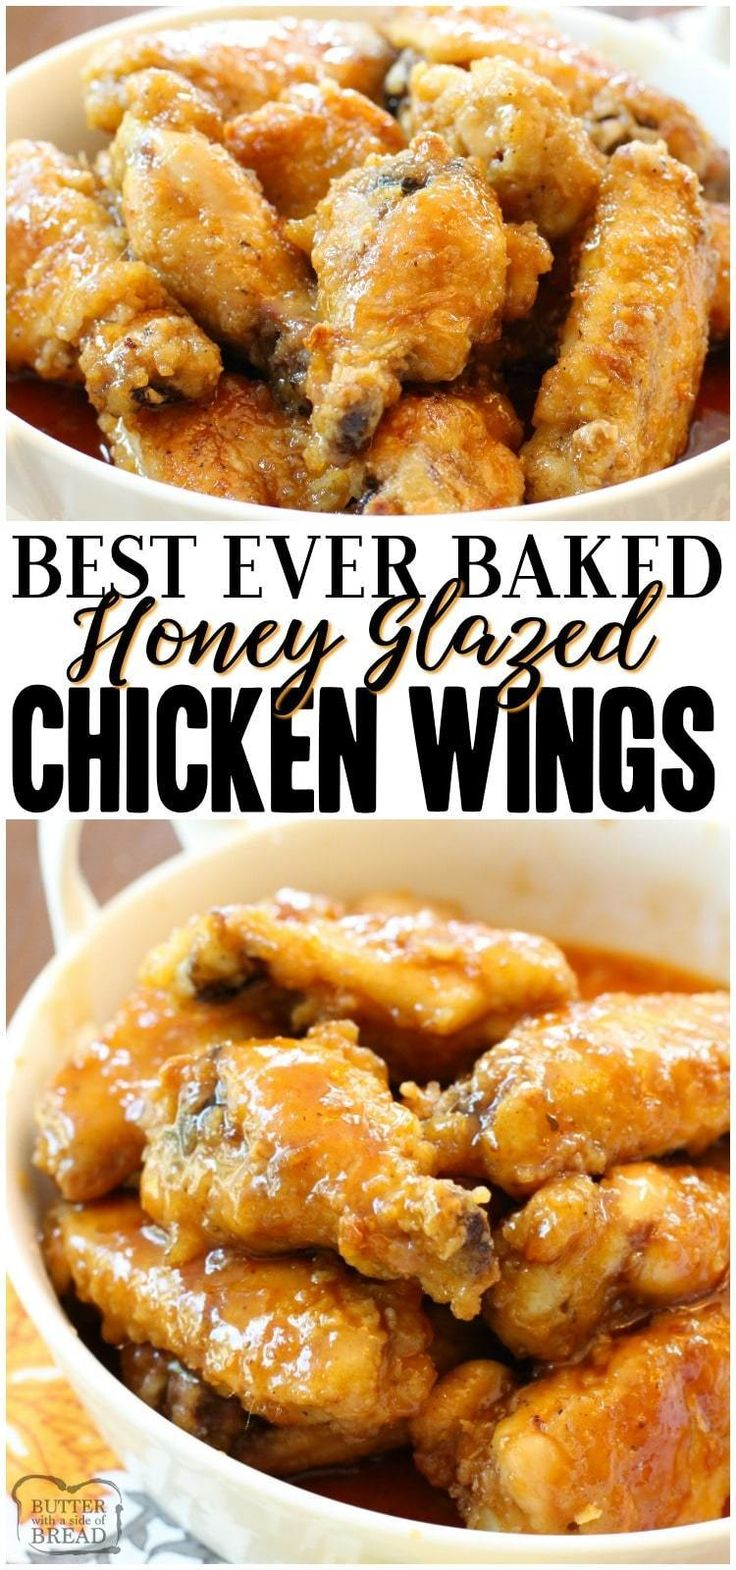 Honey Glazed Chicken Wings are baked, then smothered with a delicious sweet honey glaze. Simple bake…